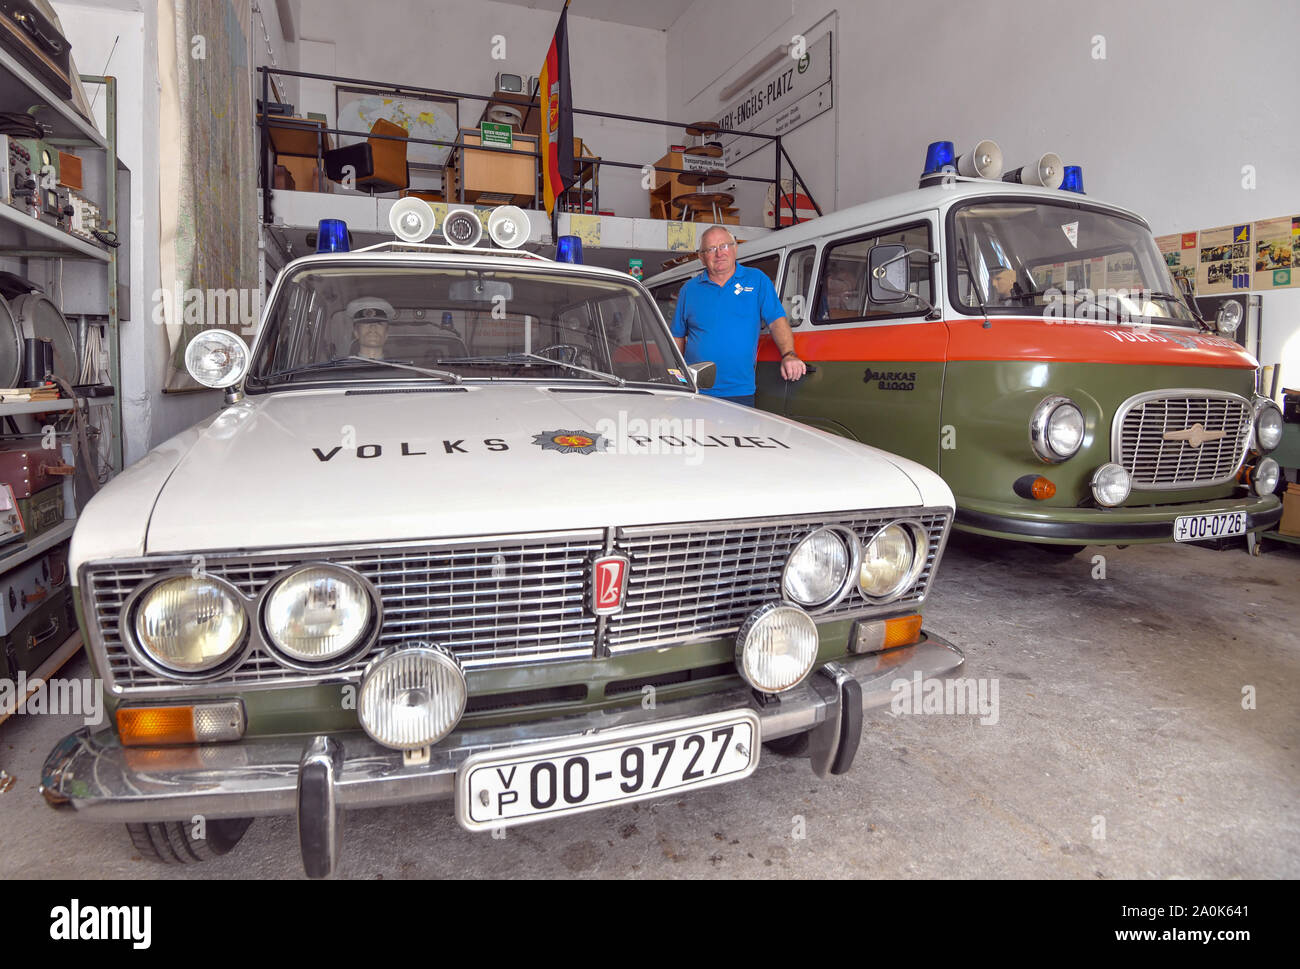 Trebus, Germany. 19th Sep, 2019. Günter Wehr, chairman of the IFA-Freunde Trebus, stands between a Lada (l) and a Barkas B1000 of the former Volkspolizei in a room full of objects from GDR times. The former German state on a small scale exists in the Brandenburg province. The IFA friends in Trebus will be offering an authentic journey through time into everyday life in the GDR on 14,000 square metres of space. Visitors indulge in memories during guided tours. Credit: Patrick Pleul/dpa-Zentralbild/ZB/dpa/Alamy Live News Stock Photo